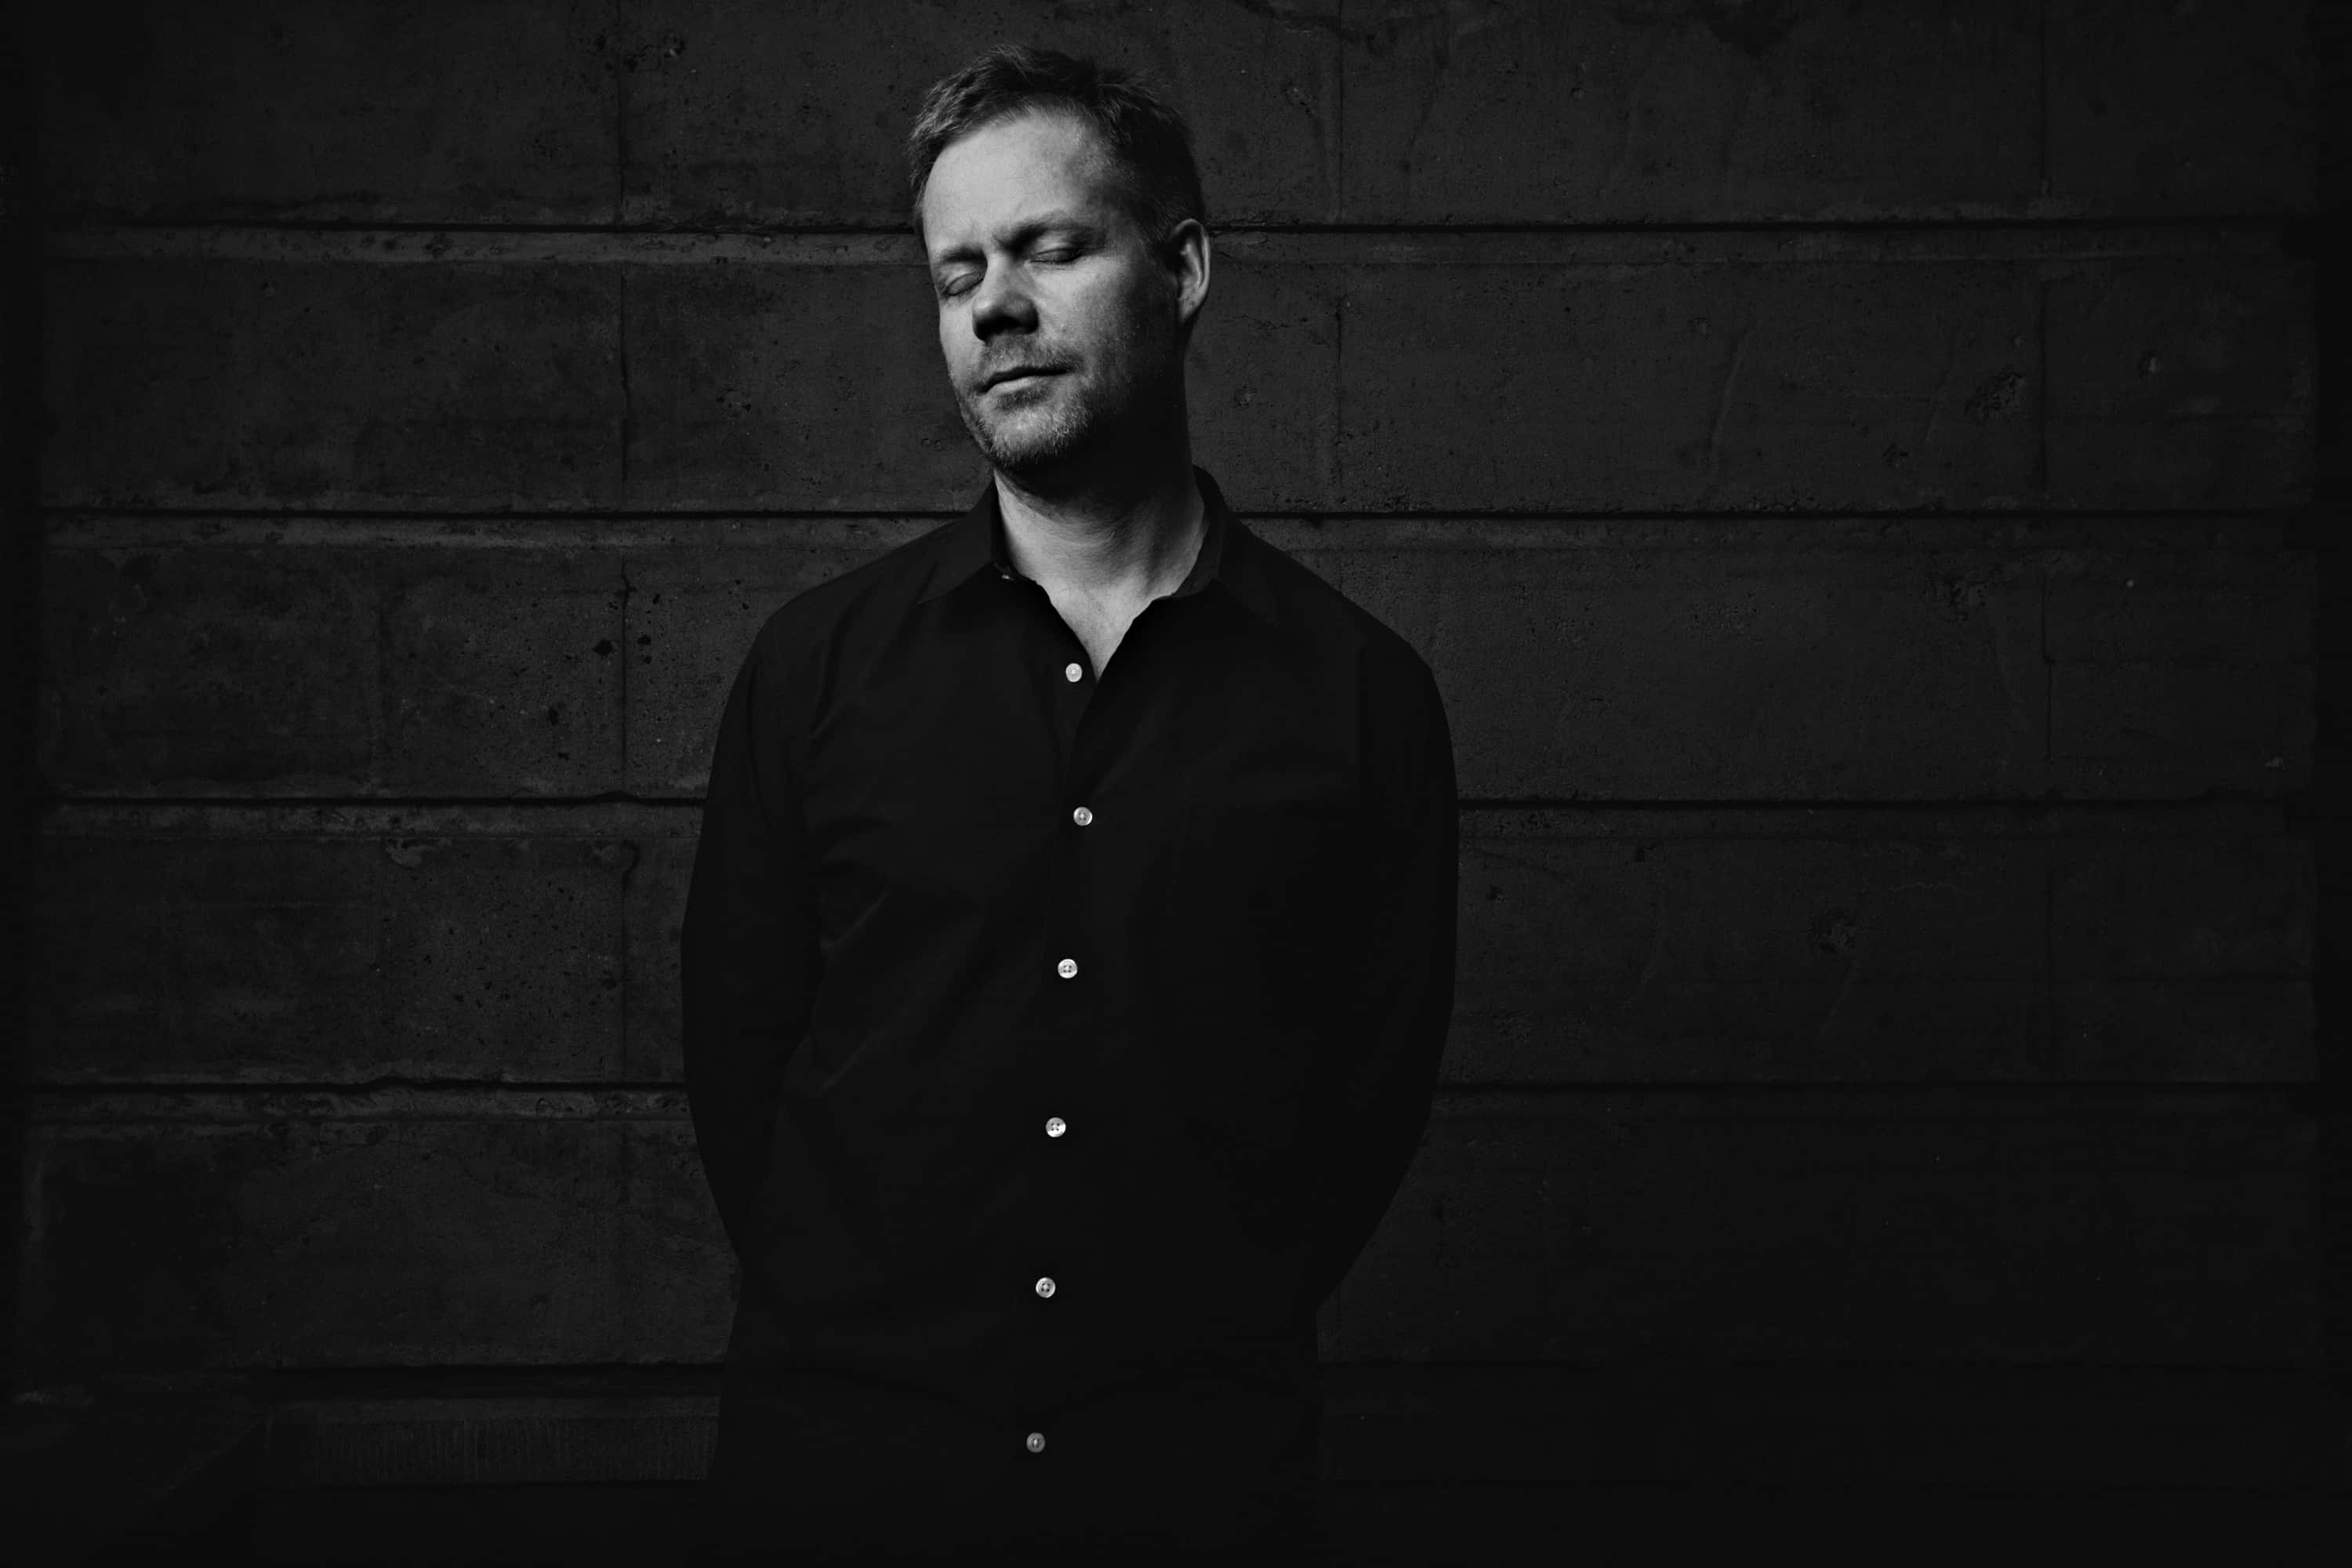 Classical composer Max Richter; photo by Mike Terry.